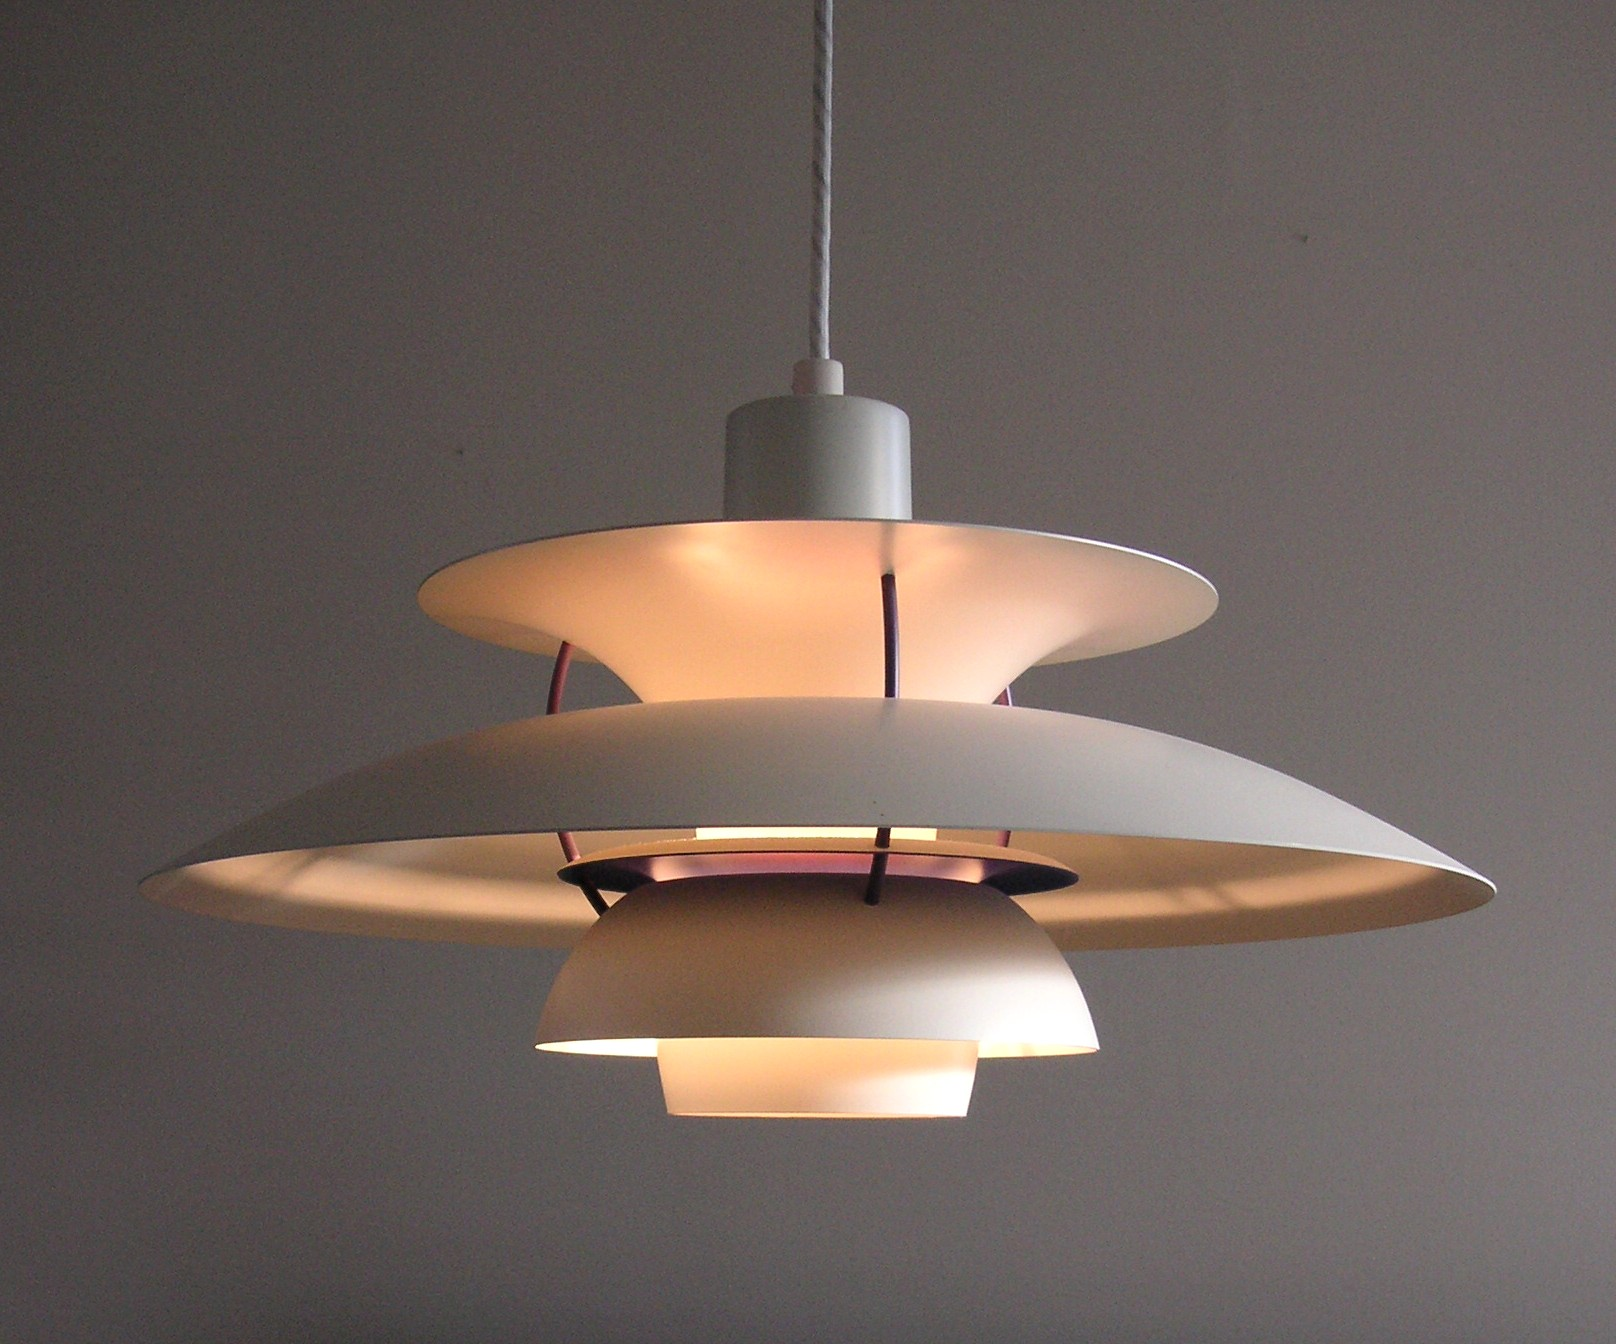 Pendant Light Wikipedia